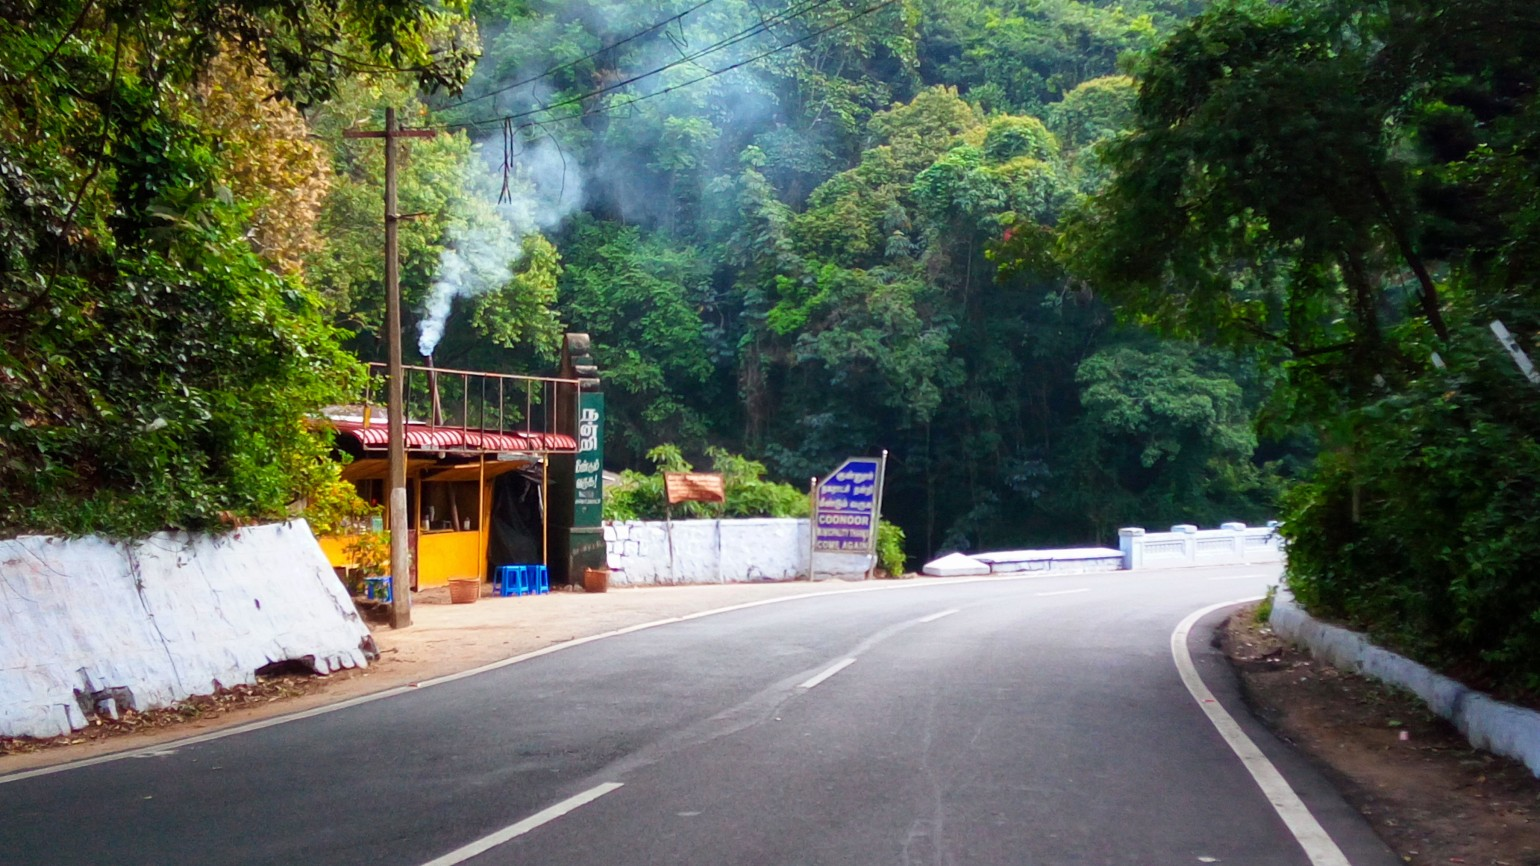 Bends and Slopes - A view of a roadside tea-shop near a bend on the mountain